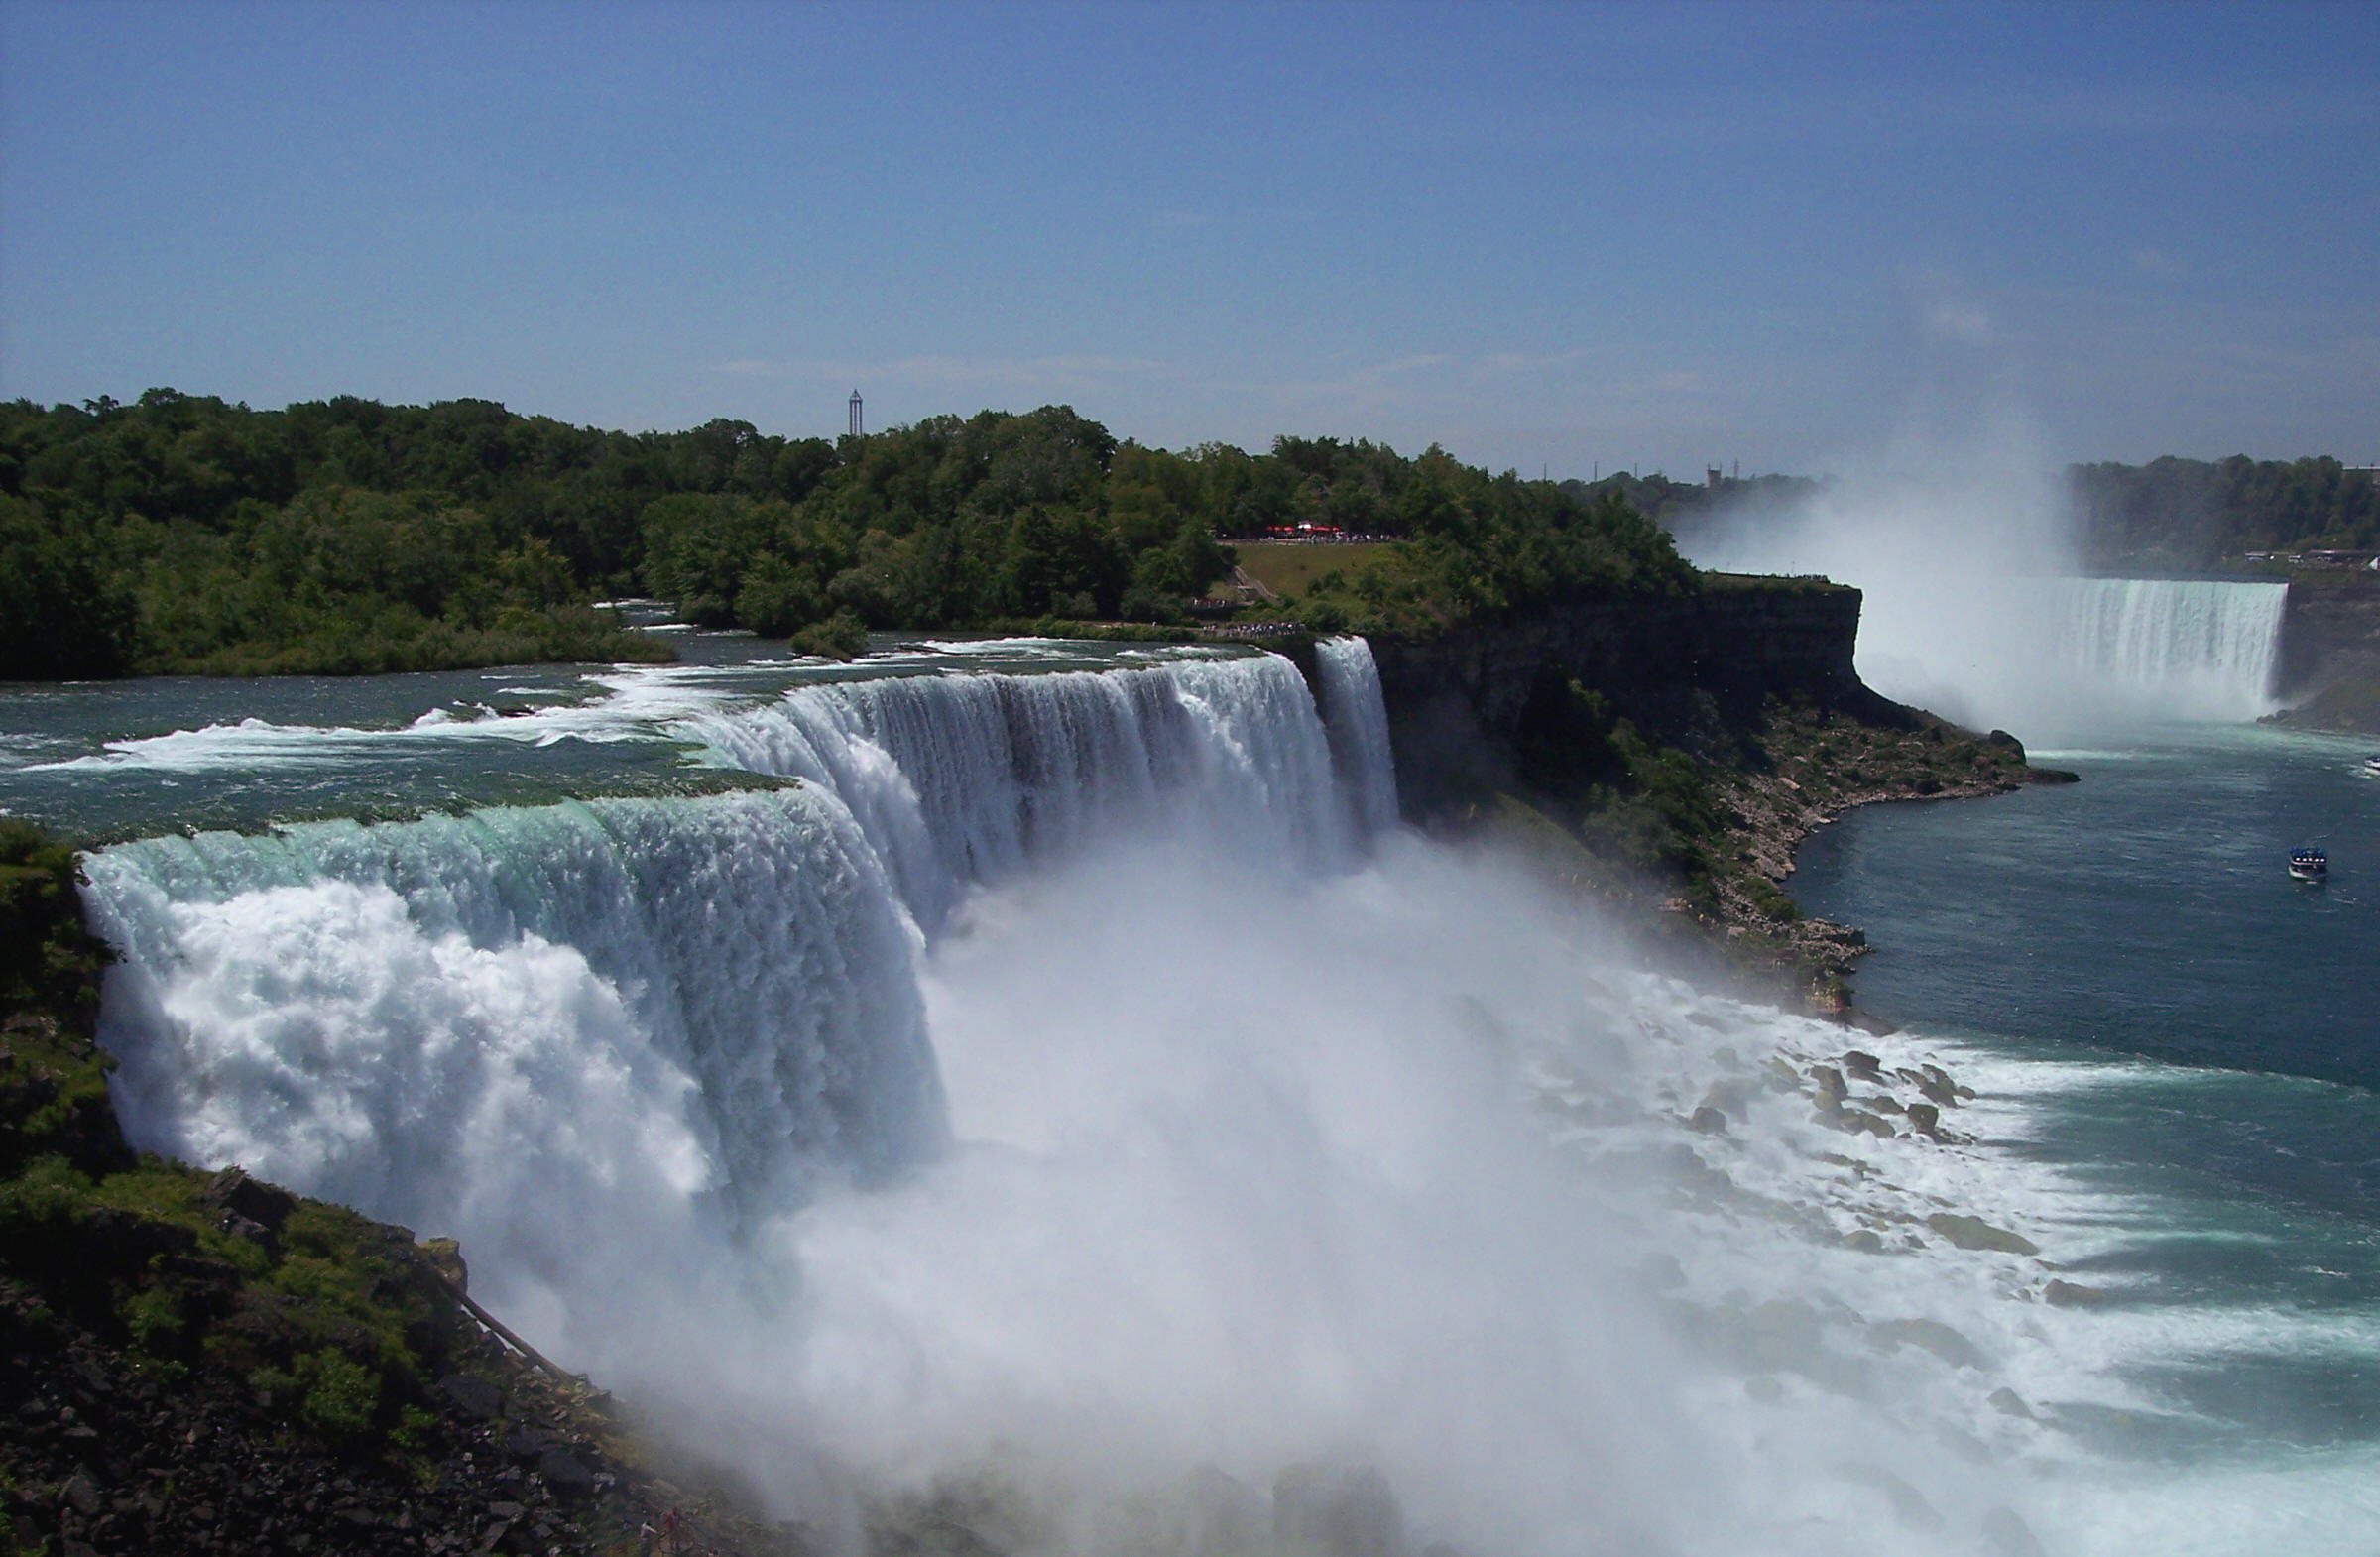 A Typical Day Trip to Niagara USA